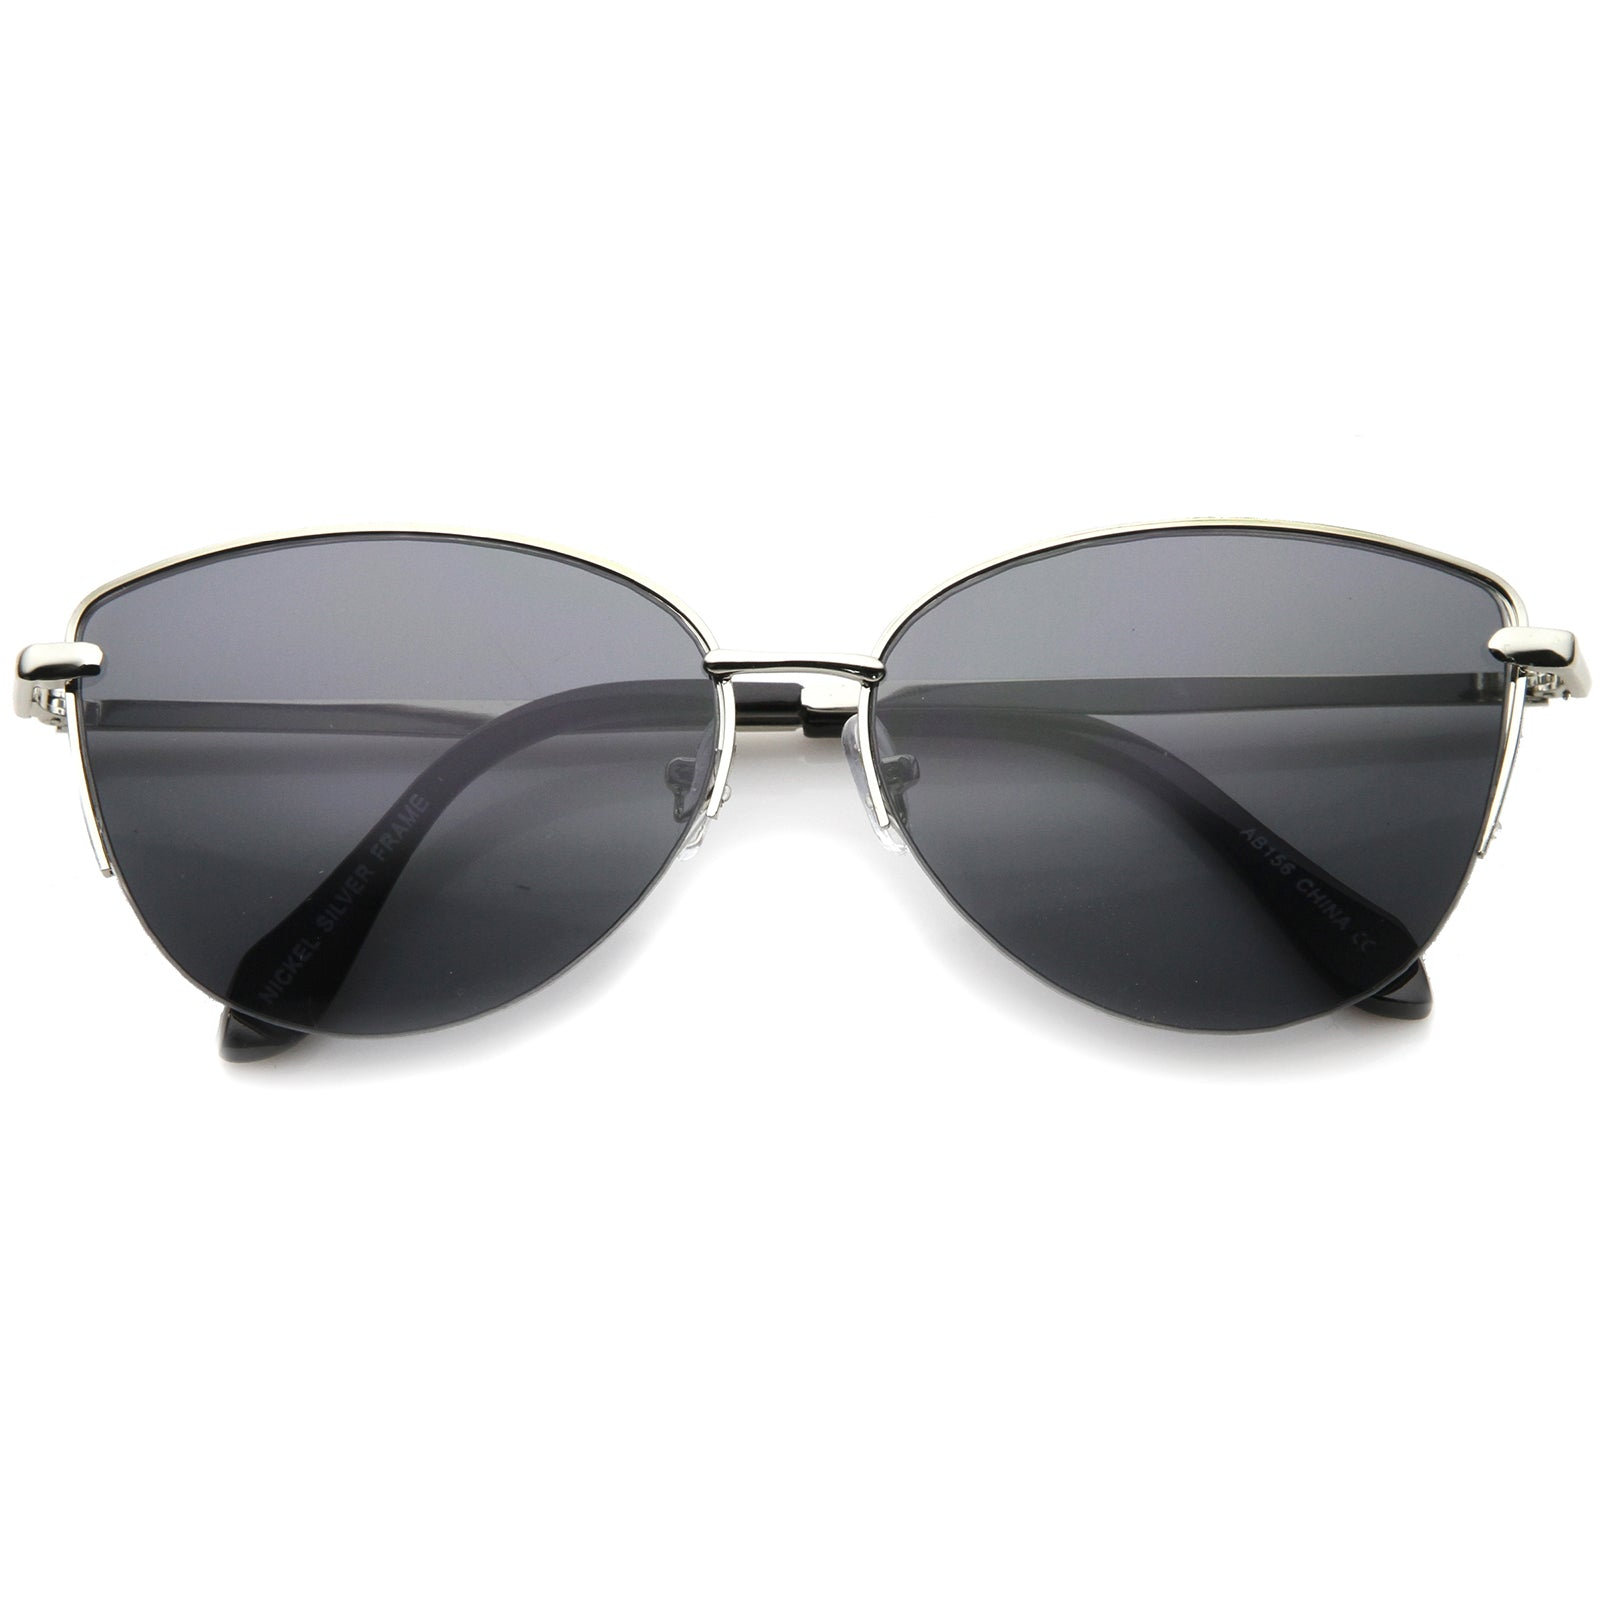 Composite Cat Eye Sunglasses With UV400 Protected Gradient Lens - sunglass.la